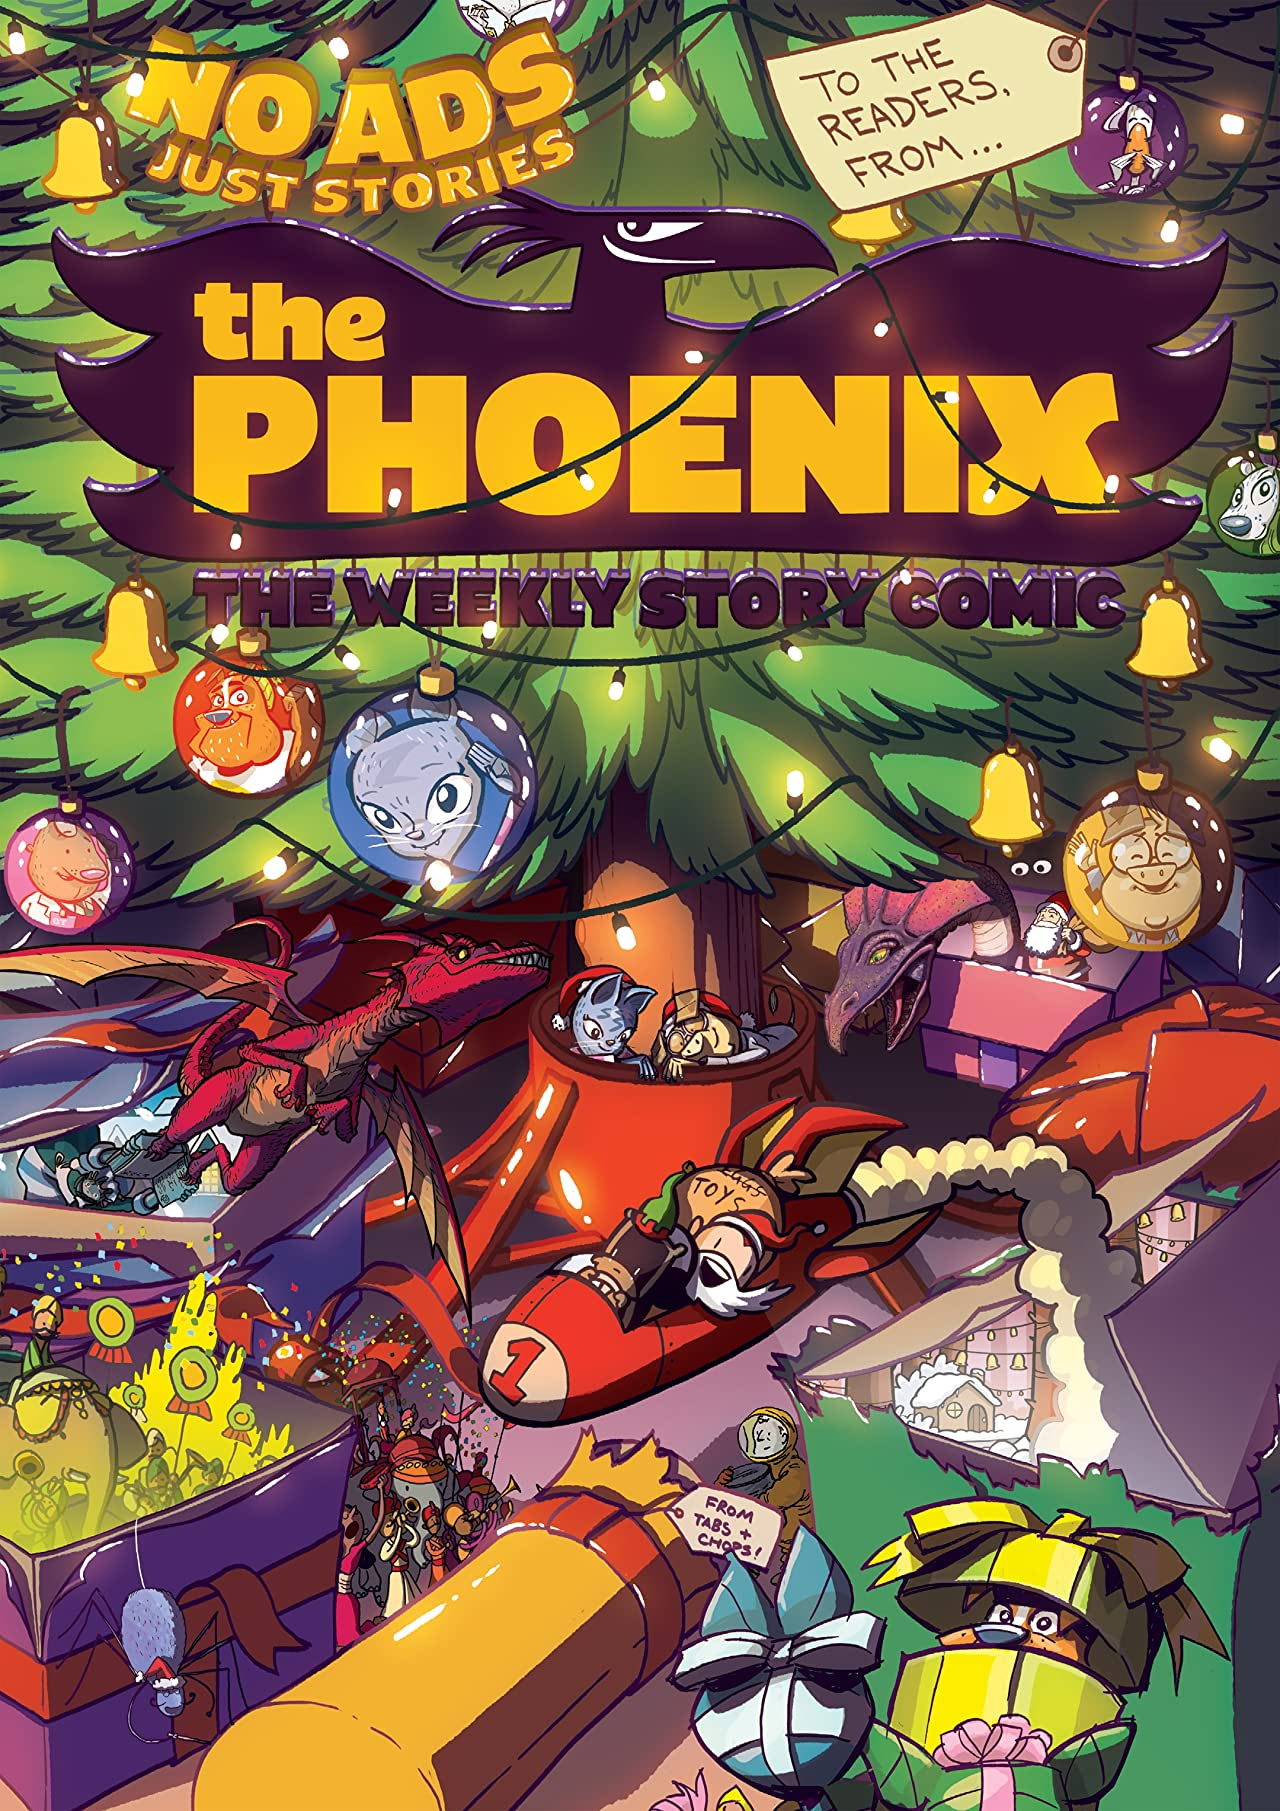 The Phoenix #103: The Weekly Story Comic